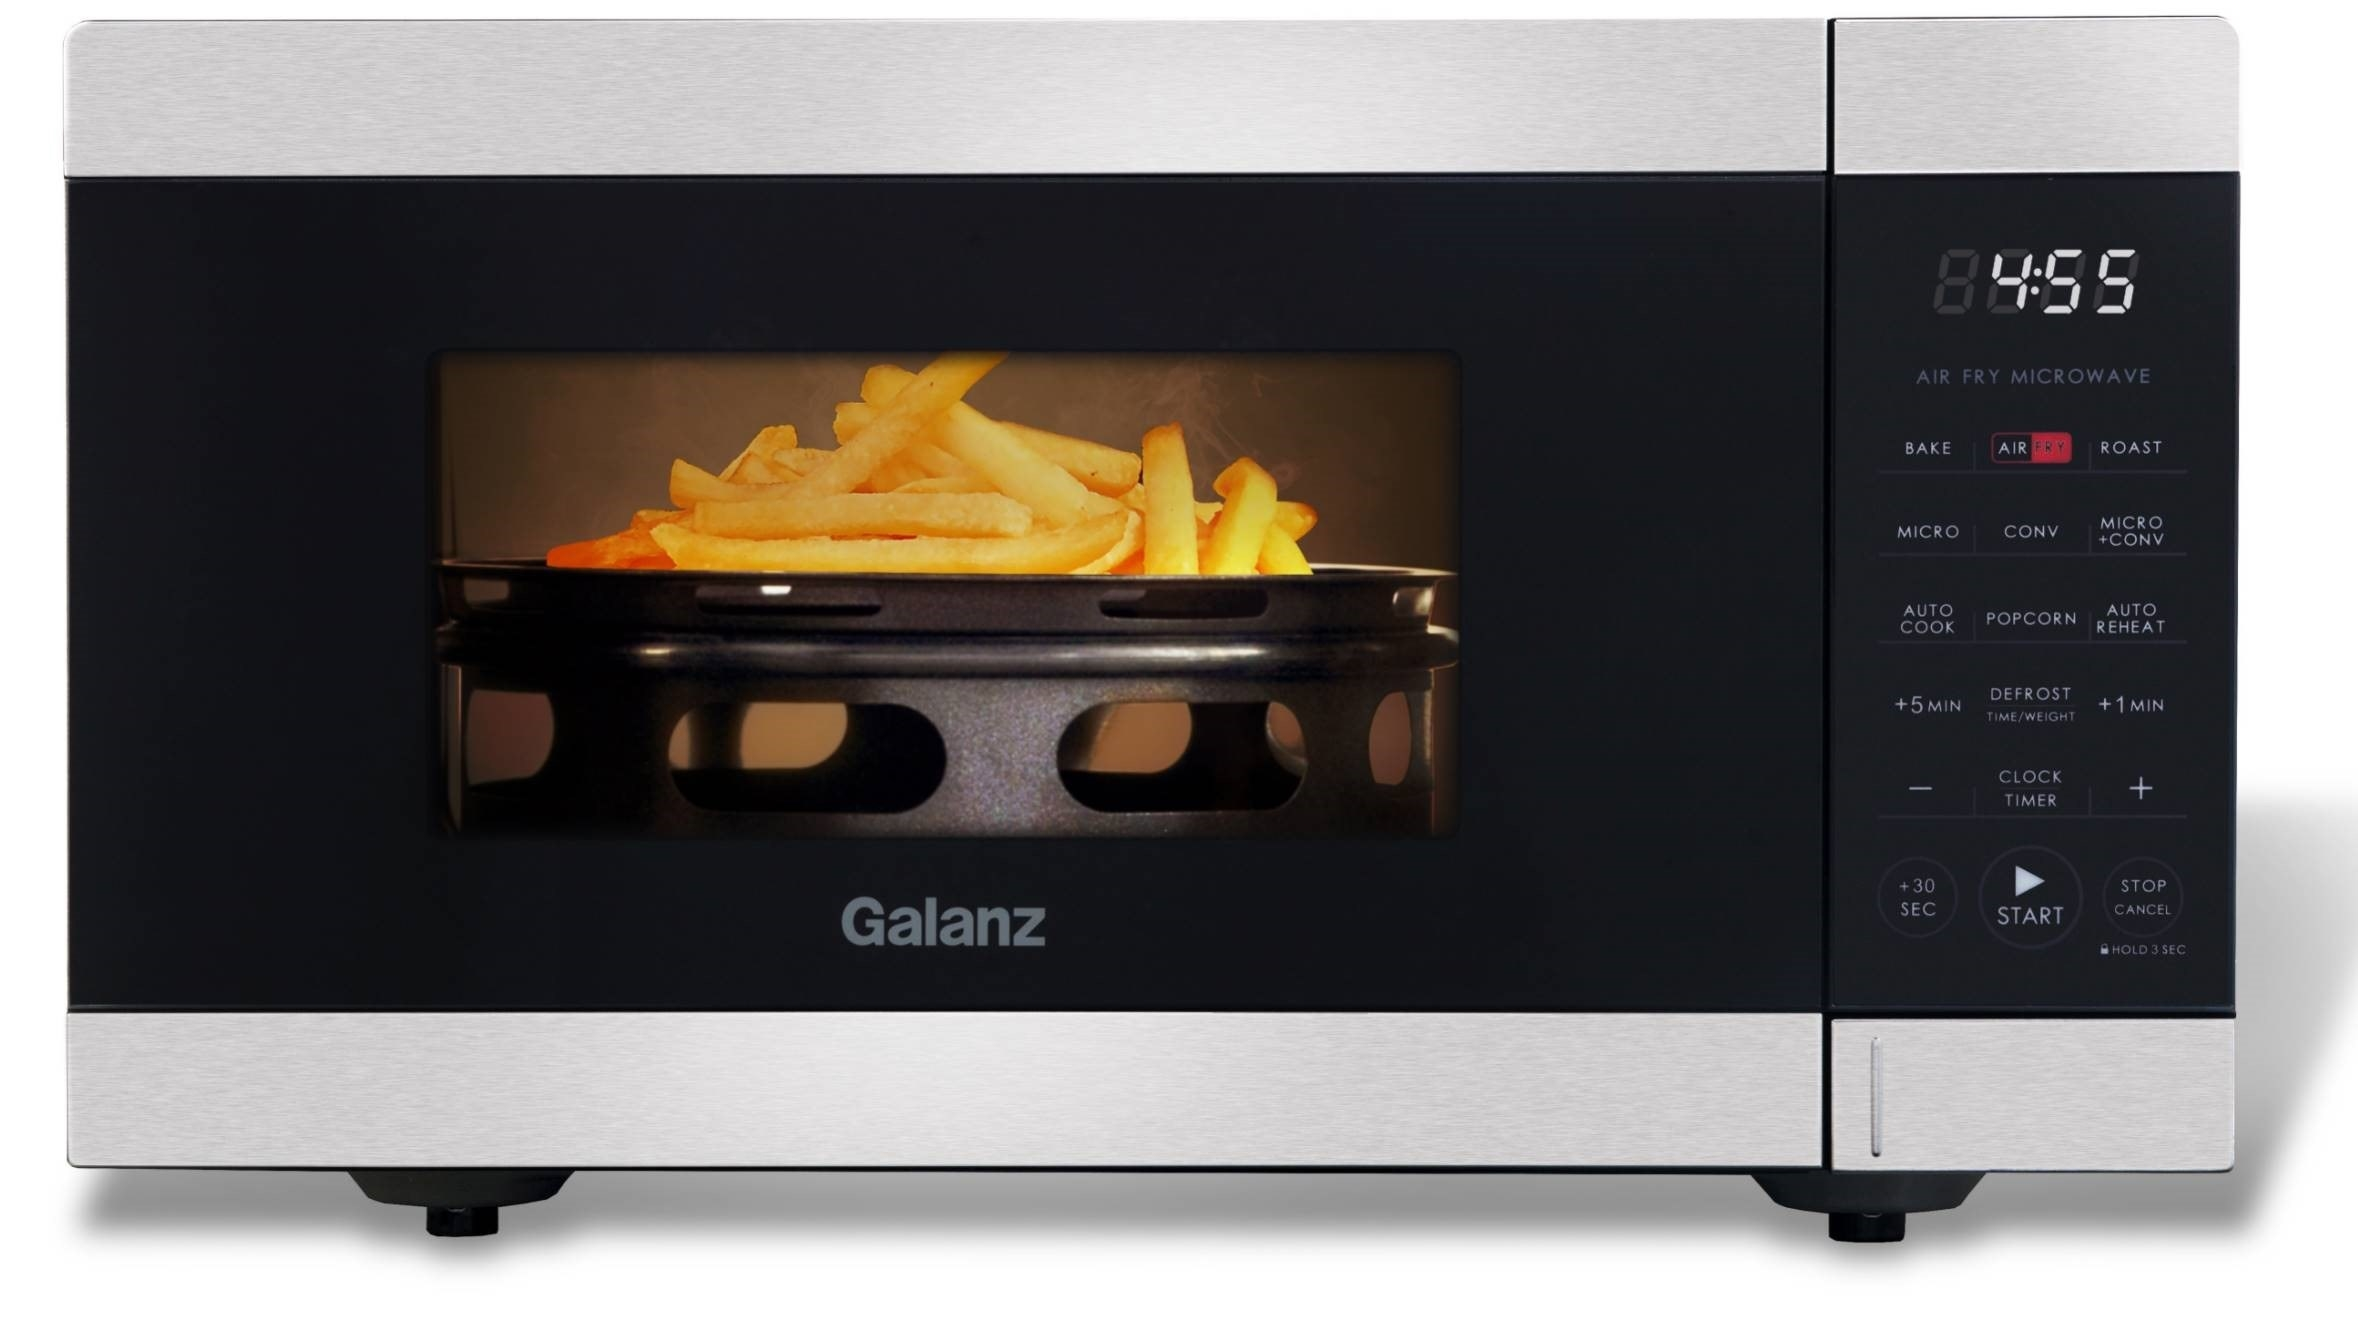 An air fry microwave oven